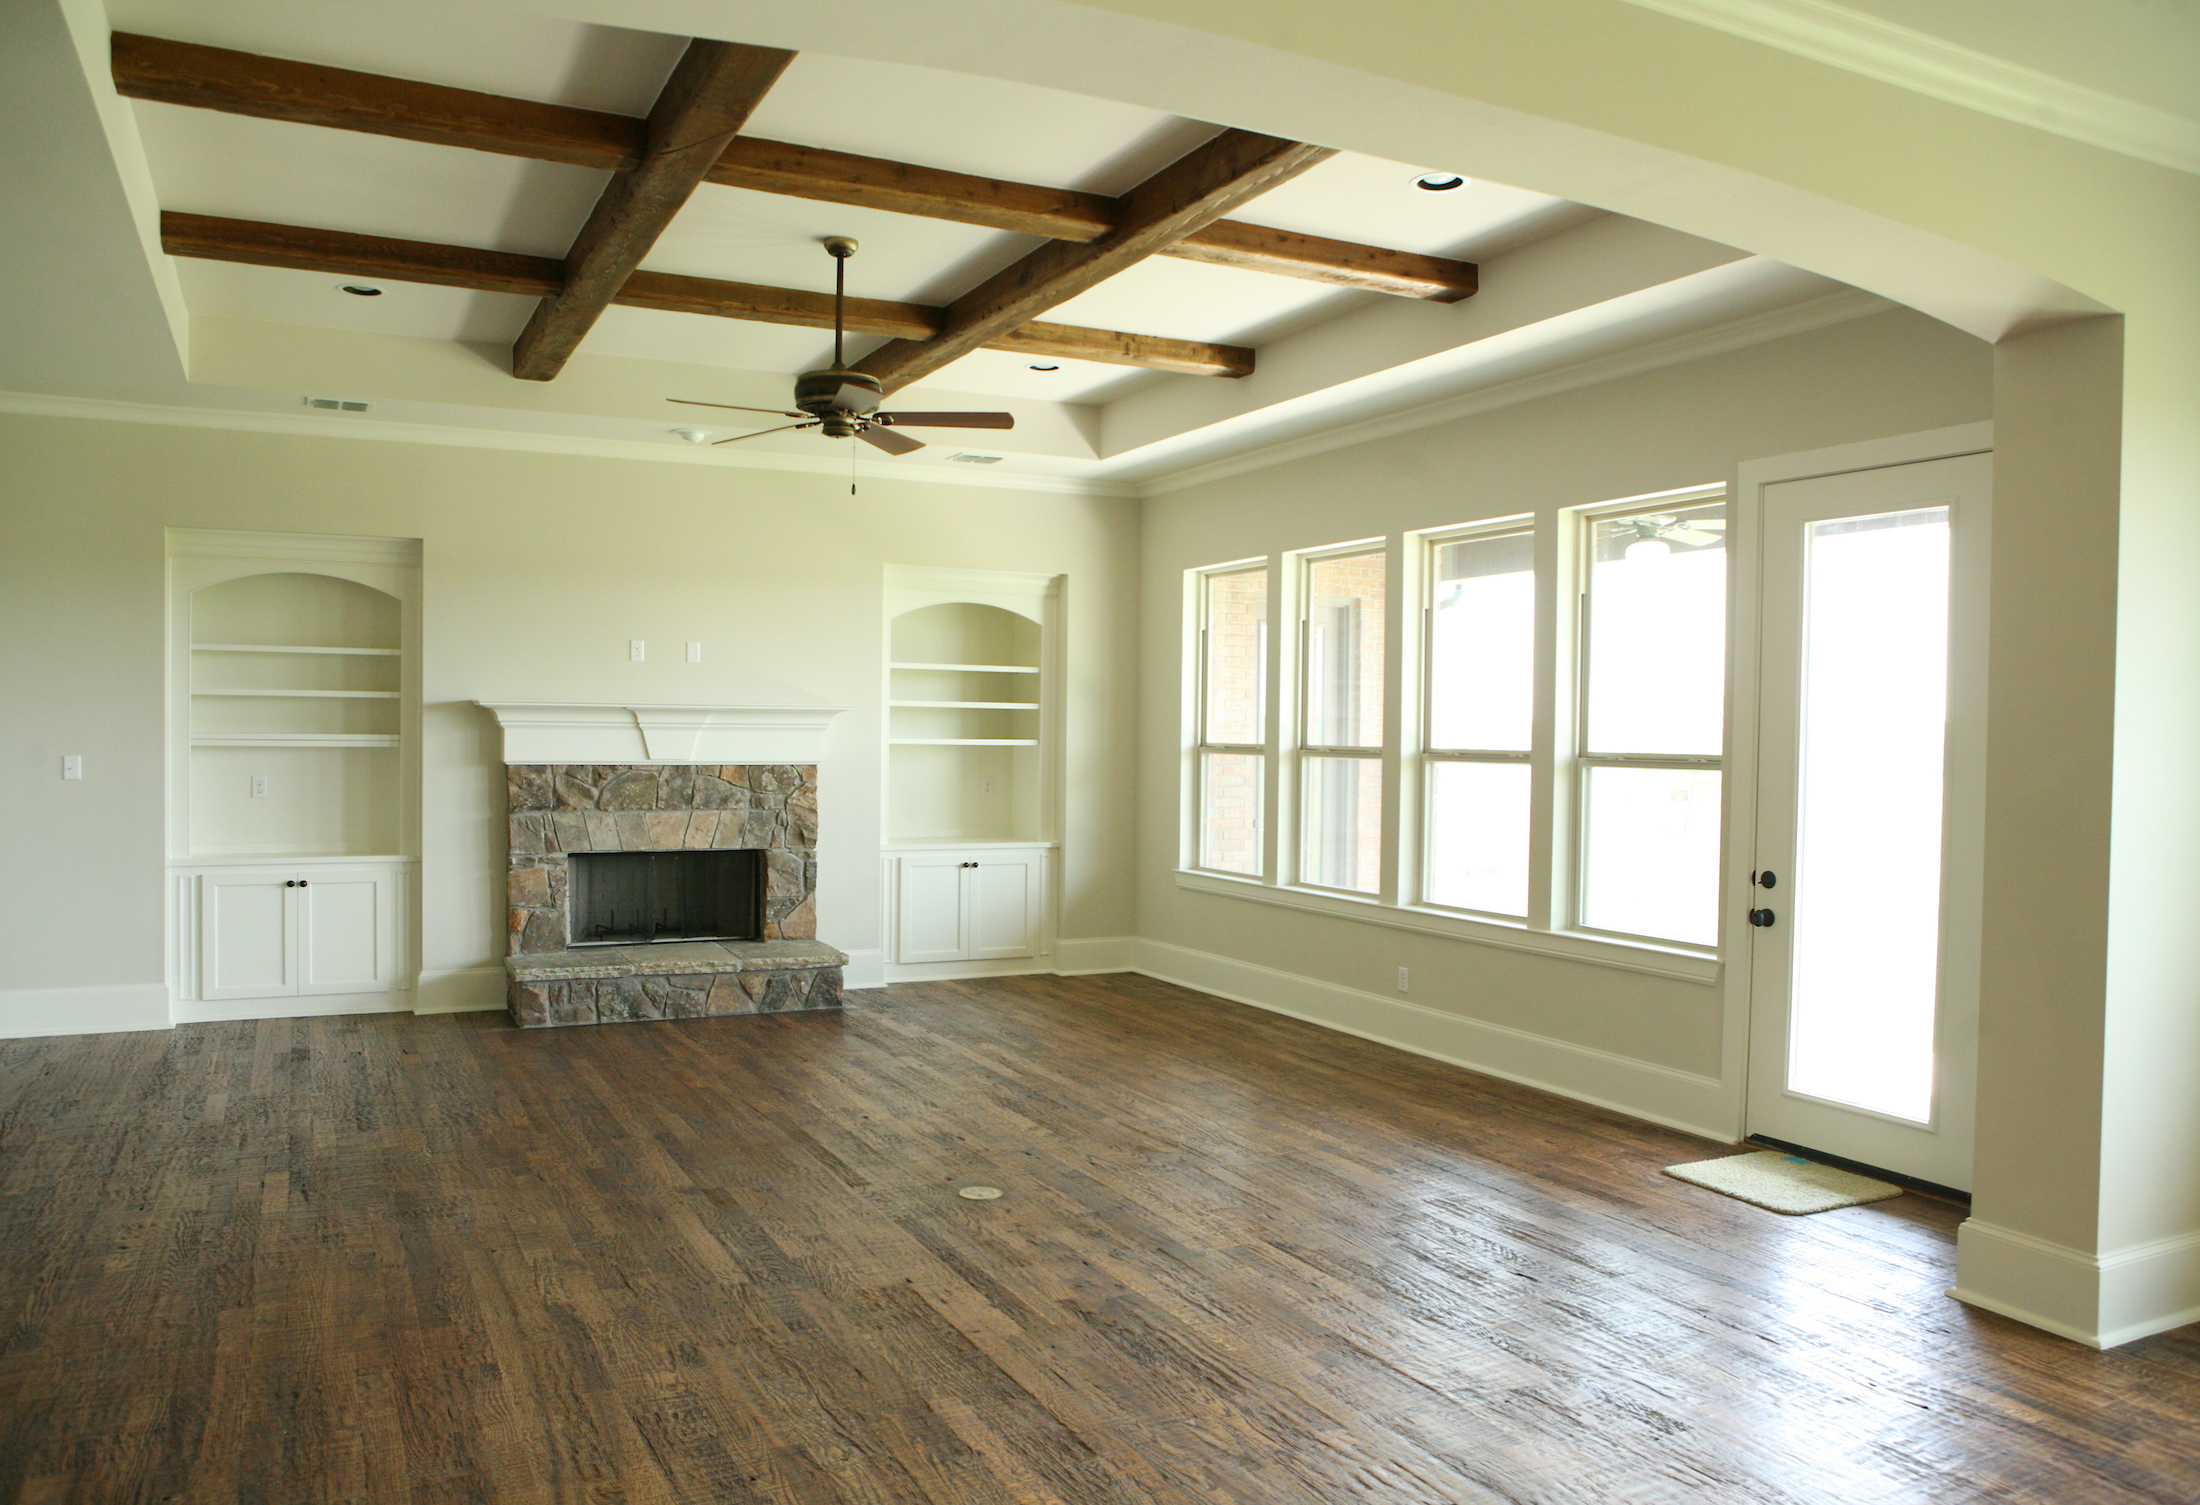 Living Room Design (Texas Homes): saddle creek family room with oak floors and beams and stone fireplace